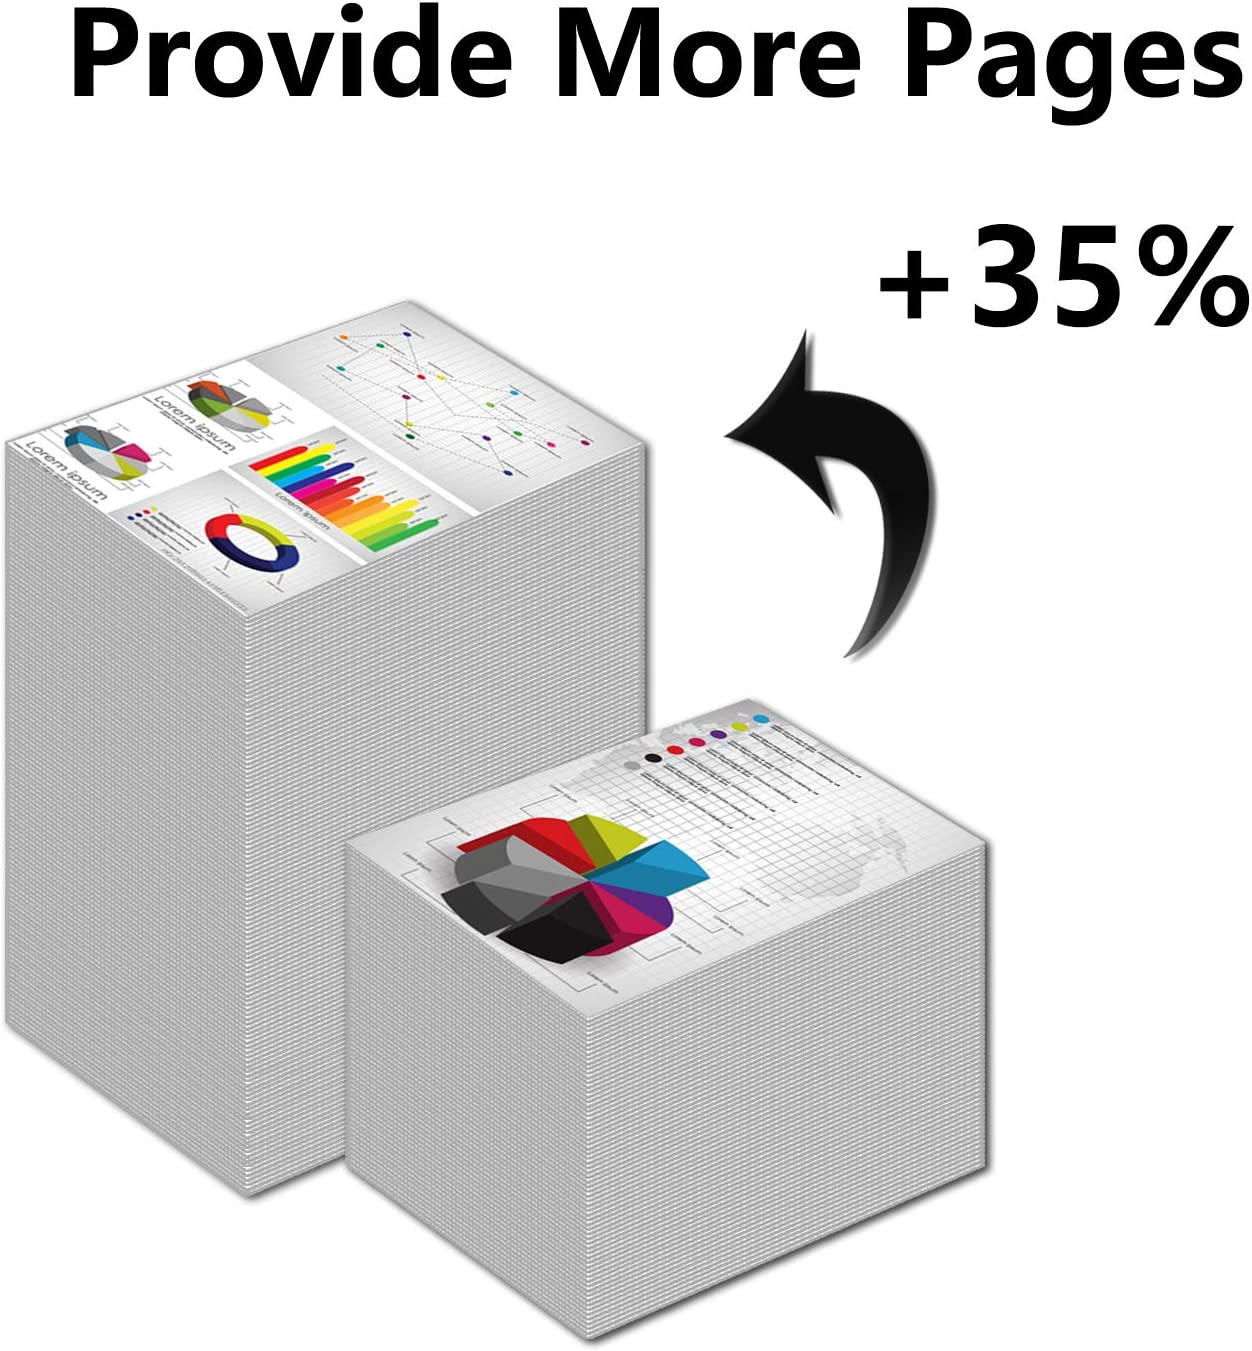 8 Pack 5BK+1C+1M+1Y MFP M180nw Printer,Sold by AlToner MFP M180n MFP M181fdw MFP M181fw M154nw 204X|CF510X CF511X CF512X CF513X Toner Cartridge Replacement for HP Color Laserjet Pro M154a